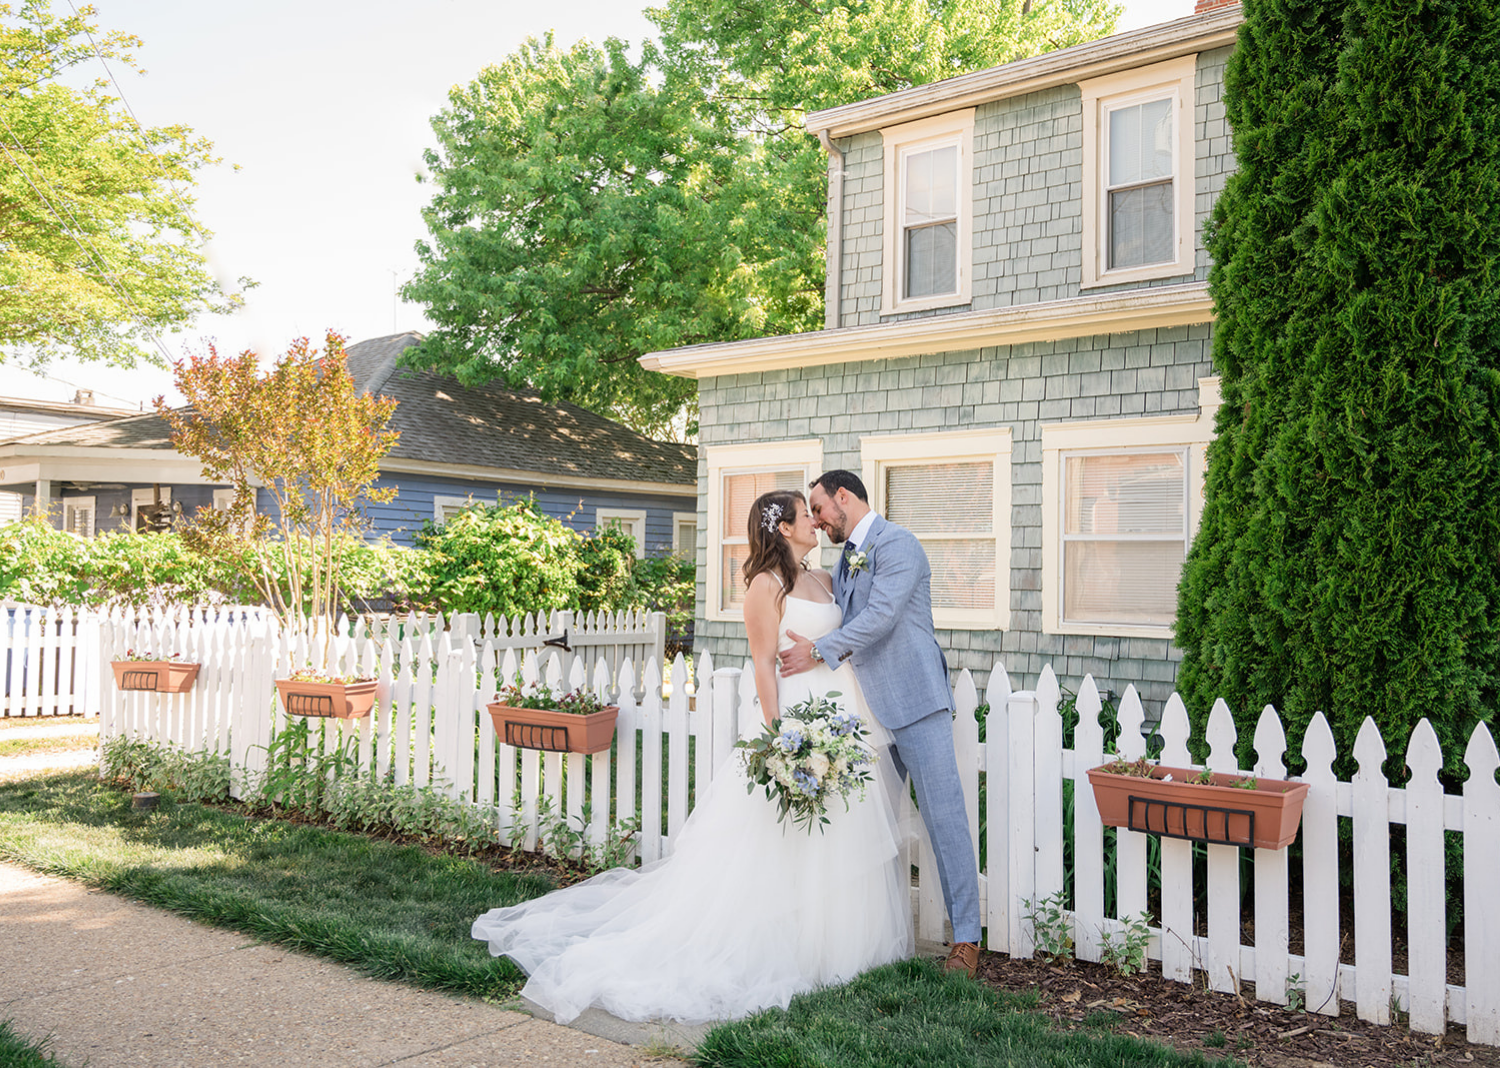 outdoor bride and groom portraits - bride and groom share a kiss